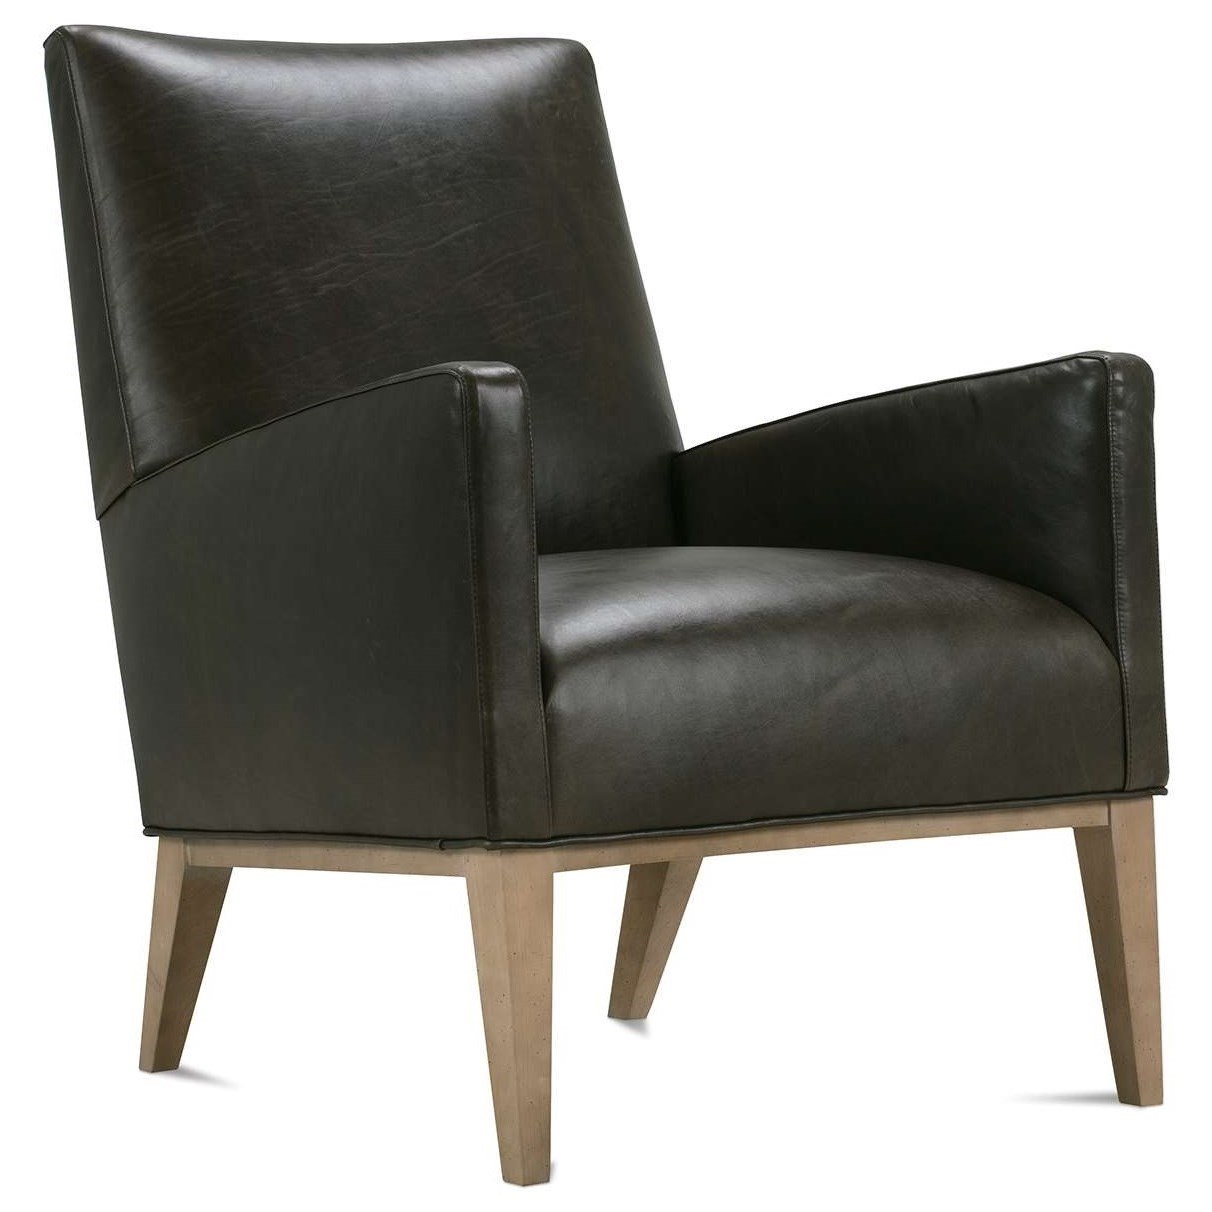 McLane Upholstered Chair by Rowe at Baer's Furniture